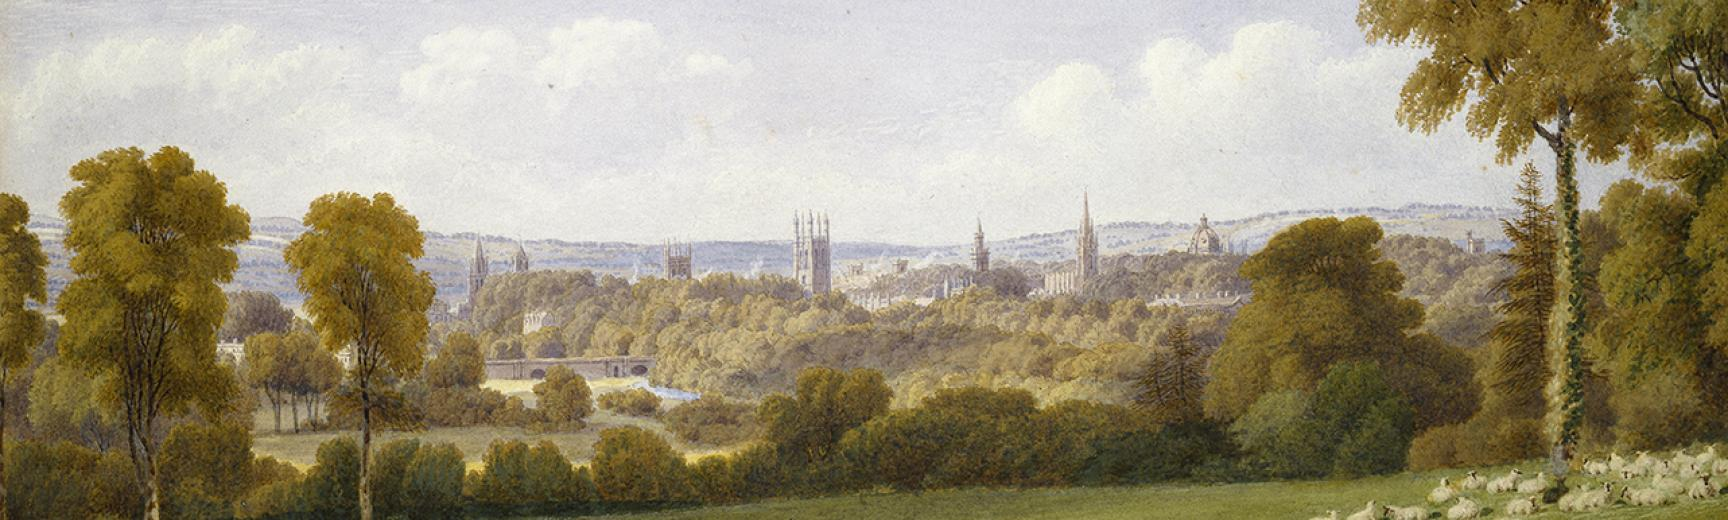 banner William Turner of Oxford, artist View of Oxford from Headington